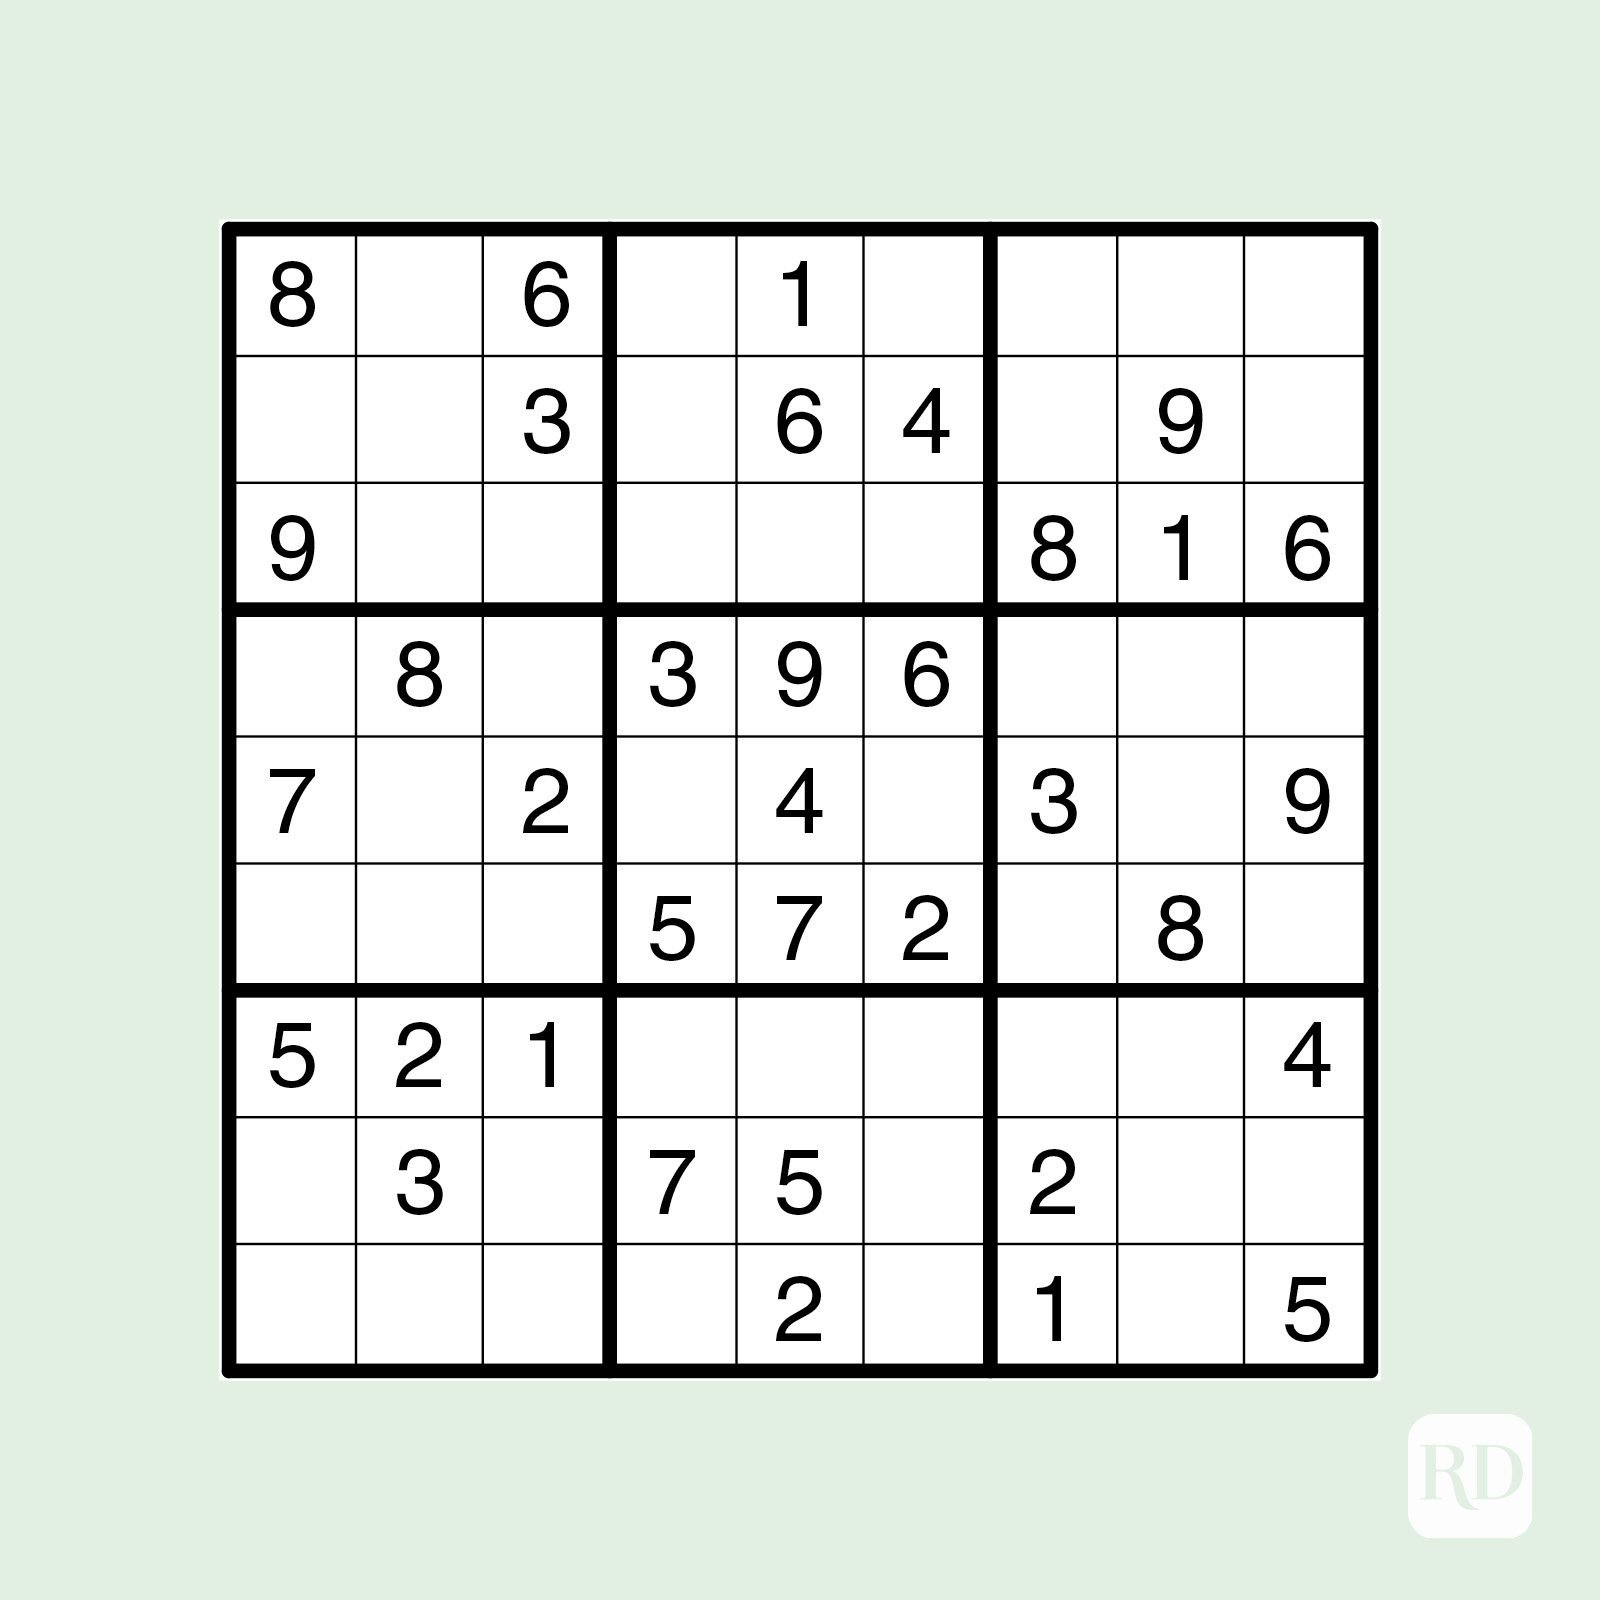 Sudoku Printable 100 Images Winter Sudoku Puzzles Free Printable Kara Creates 20 Free Printable Sudoku Puzzles For All Levels Reader S Digest